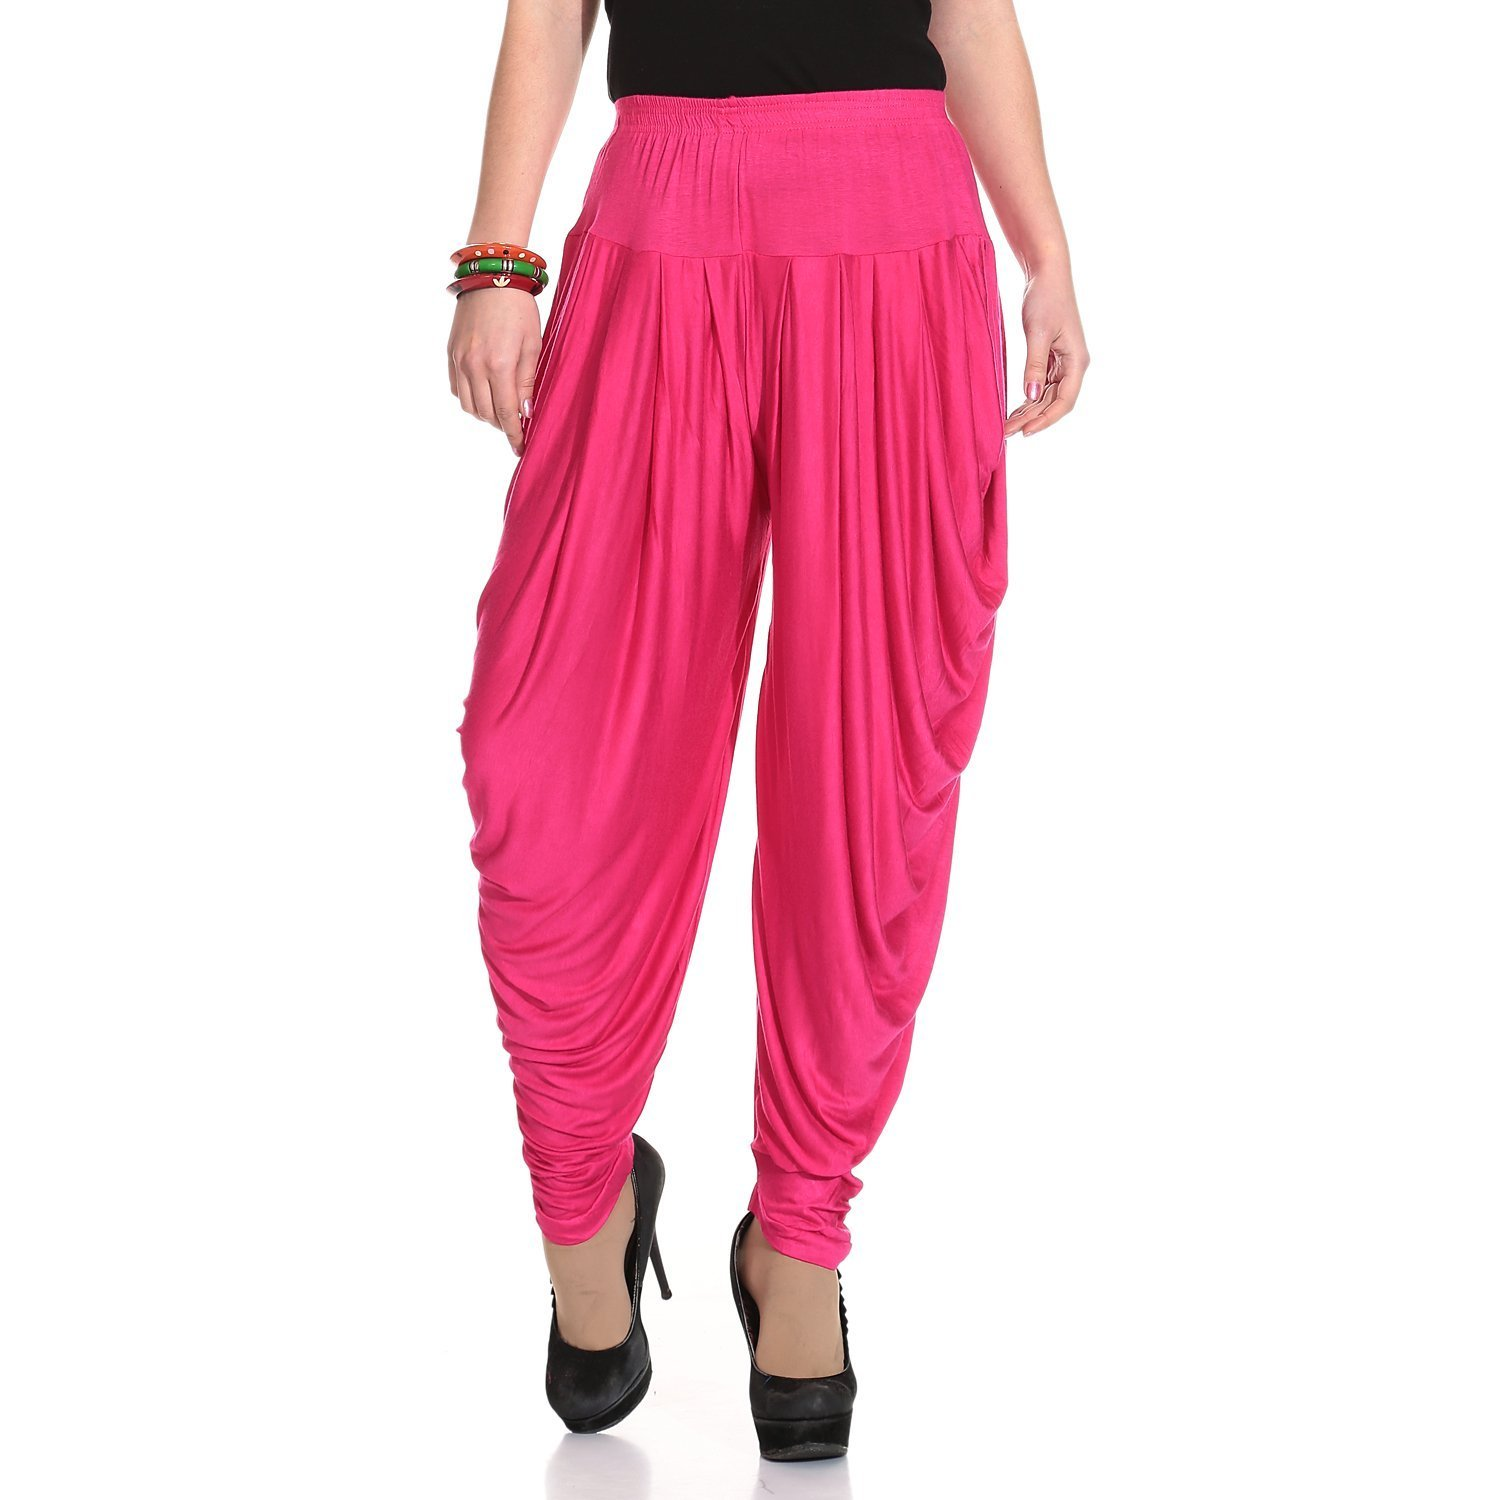 Ardour Dark Pink Relaxed Comfortable Cotton Blend Belly Dance Pants for Women- Free Size